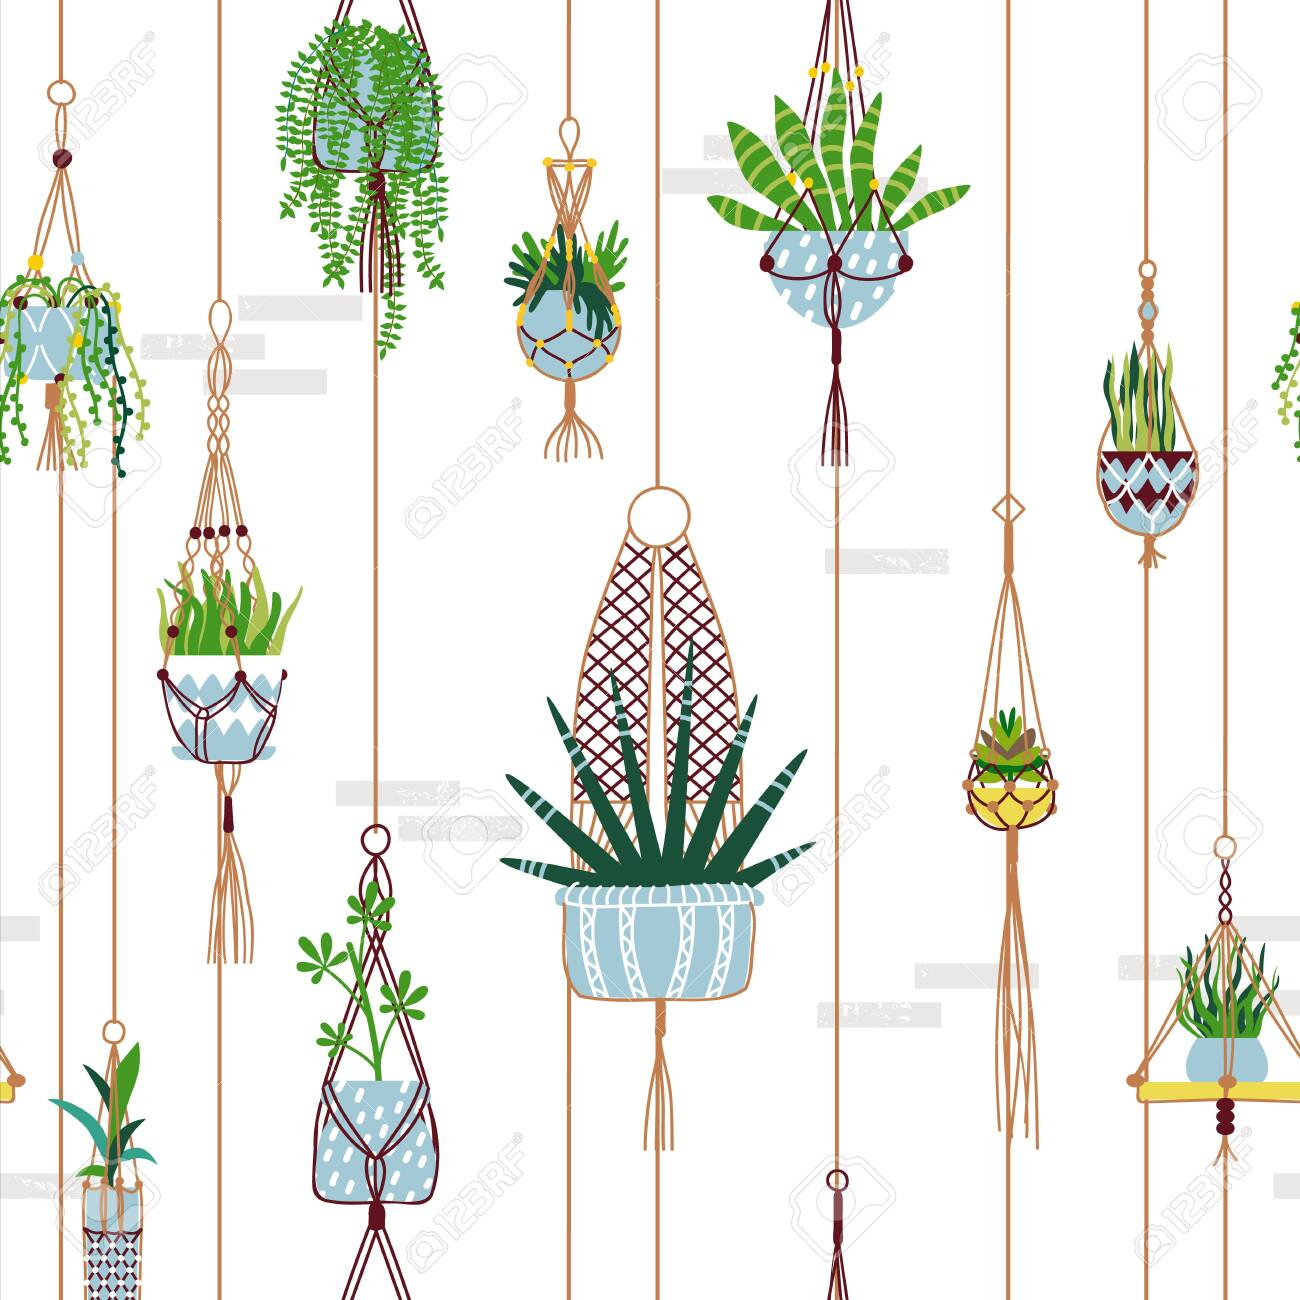 Green House Plant Seamless Pattern Of Modern Macrame Potted Plants Royalty Free Cliparts Vectors And Stock Illustration Image 140692438